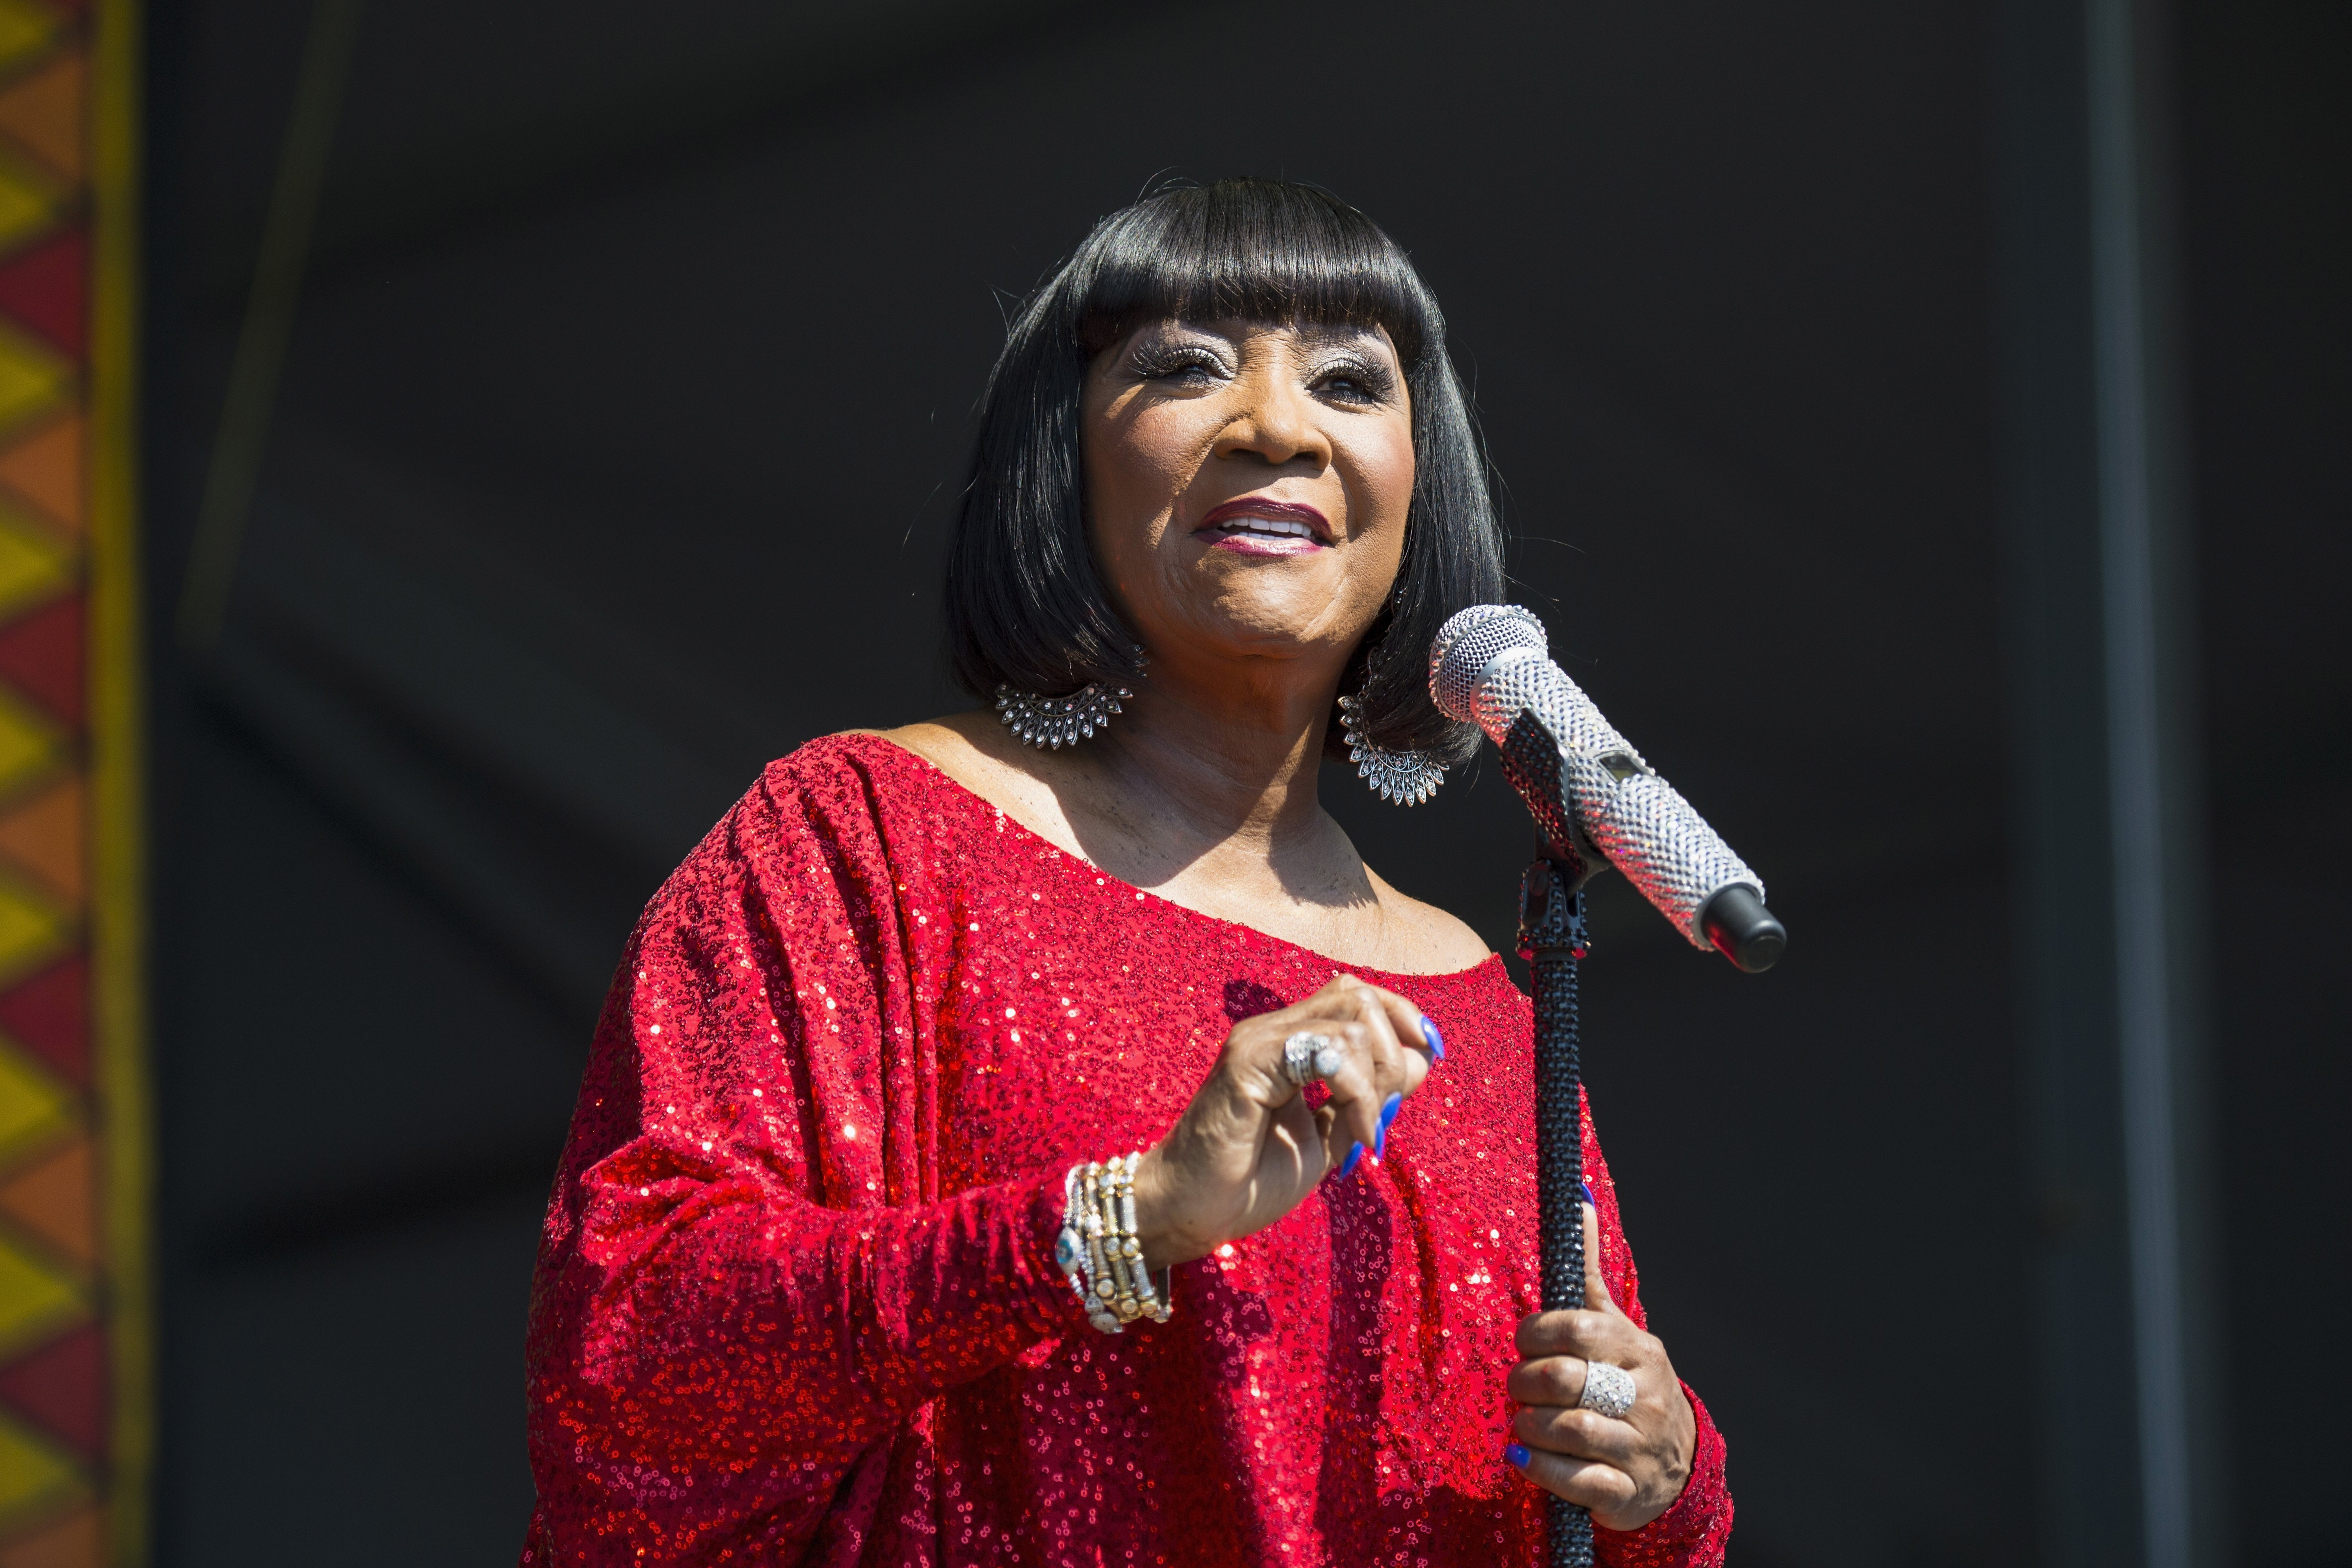 Patti LaBelle performs during the 2017 New Orleans Jazz & Heritage Festival at Fair Grounds Race Course on May 7, 2017   Photo: Getty Images